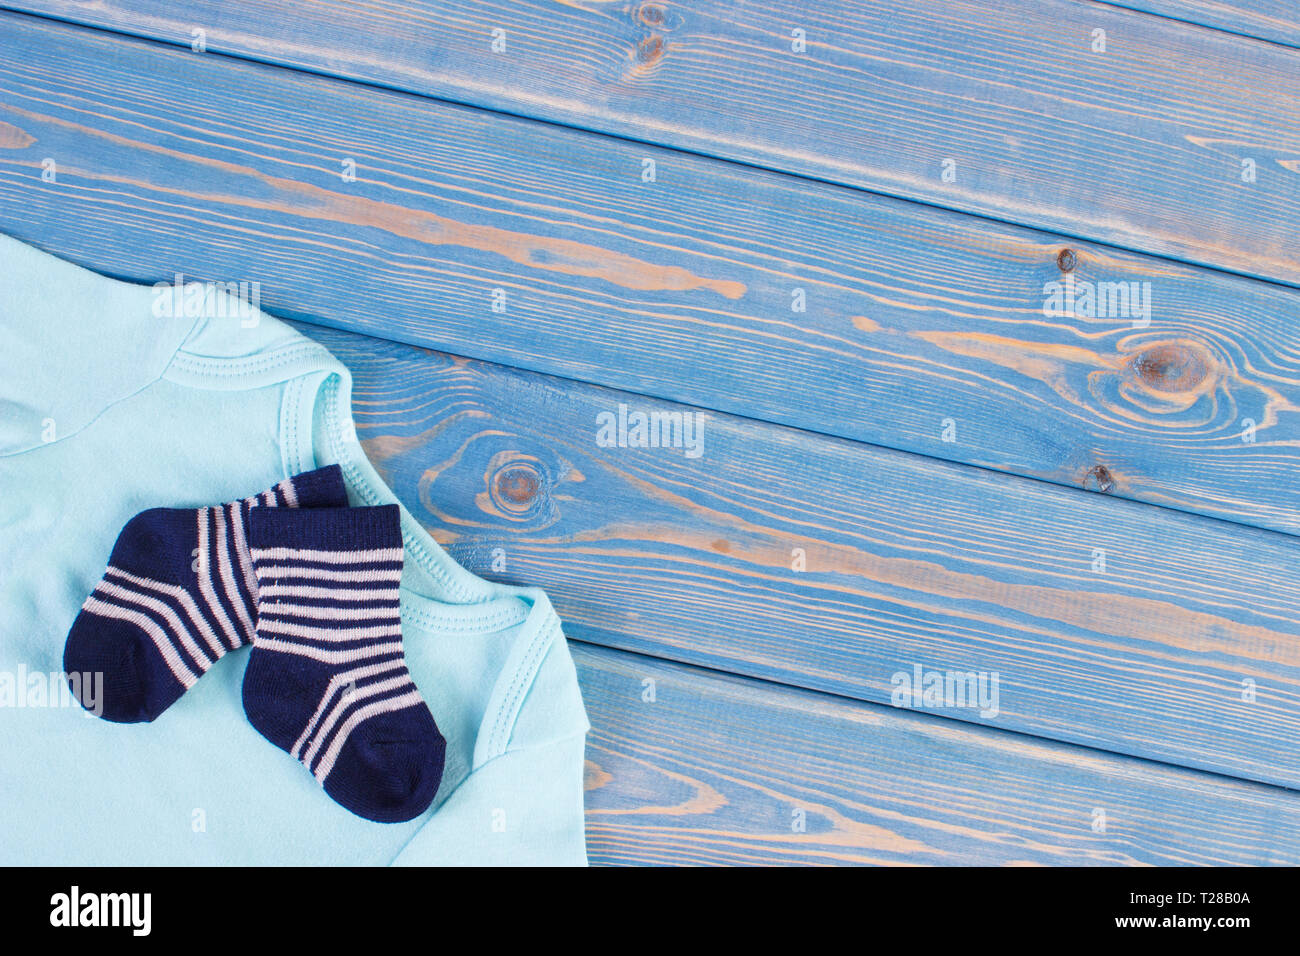 Clothes for little baby boy, extending family concept, copy